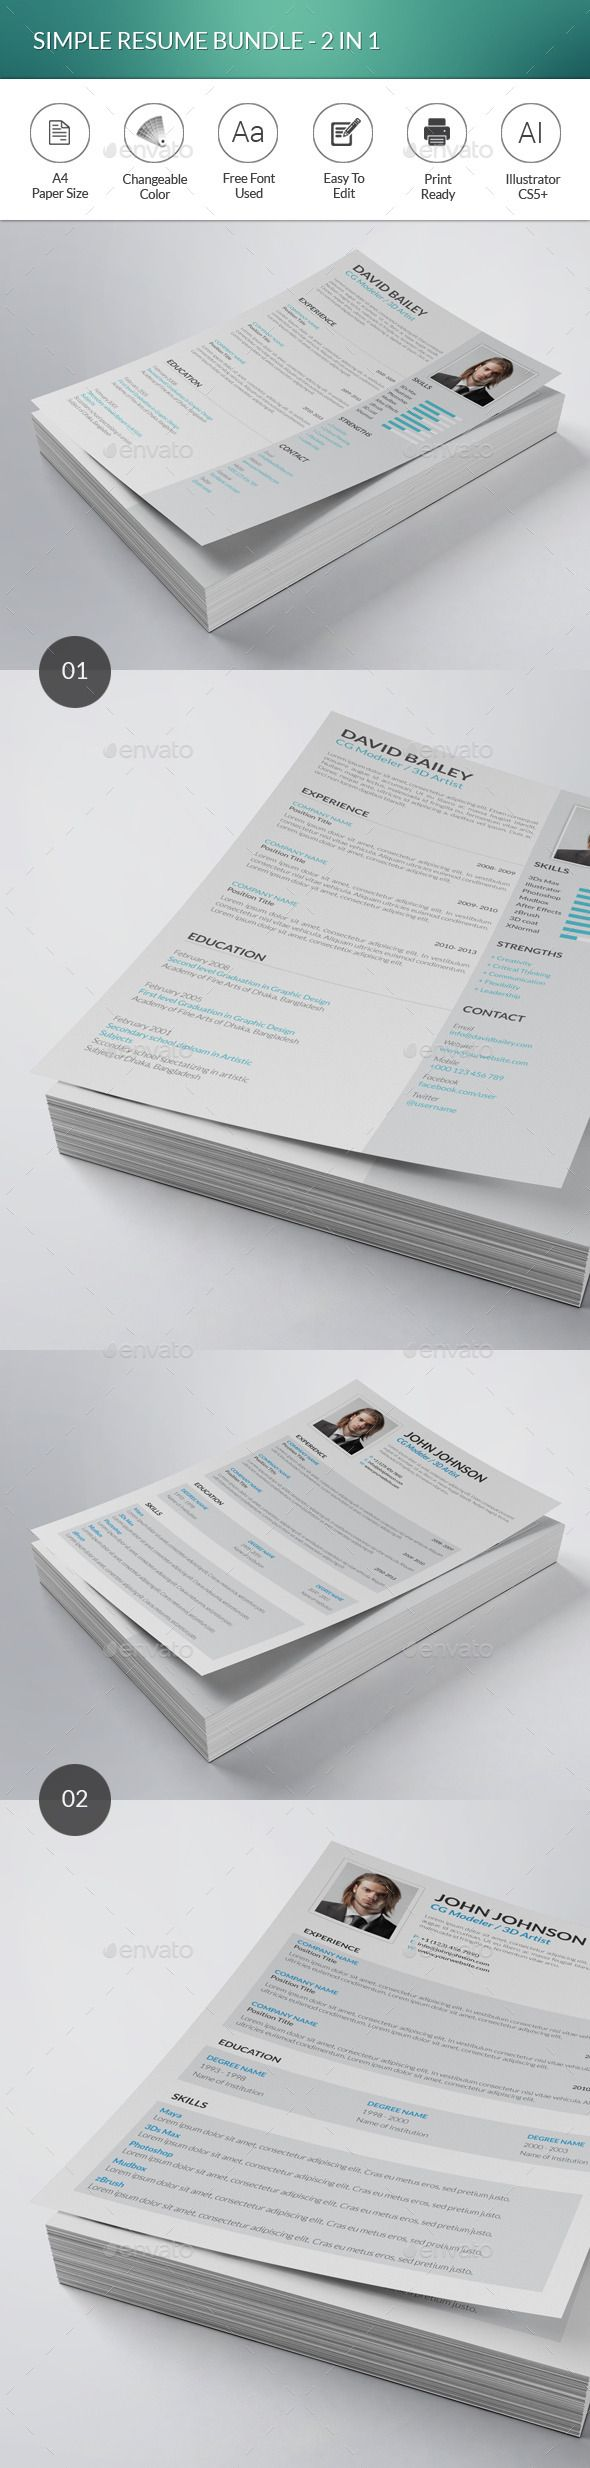 What Font To Use On Resume Simple Resume Bundle  2 In 1  Simple Resume Cv Resume Template .